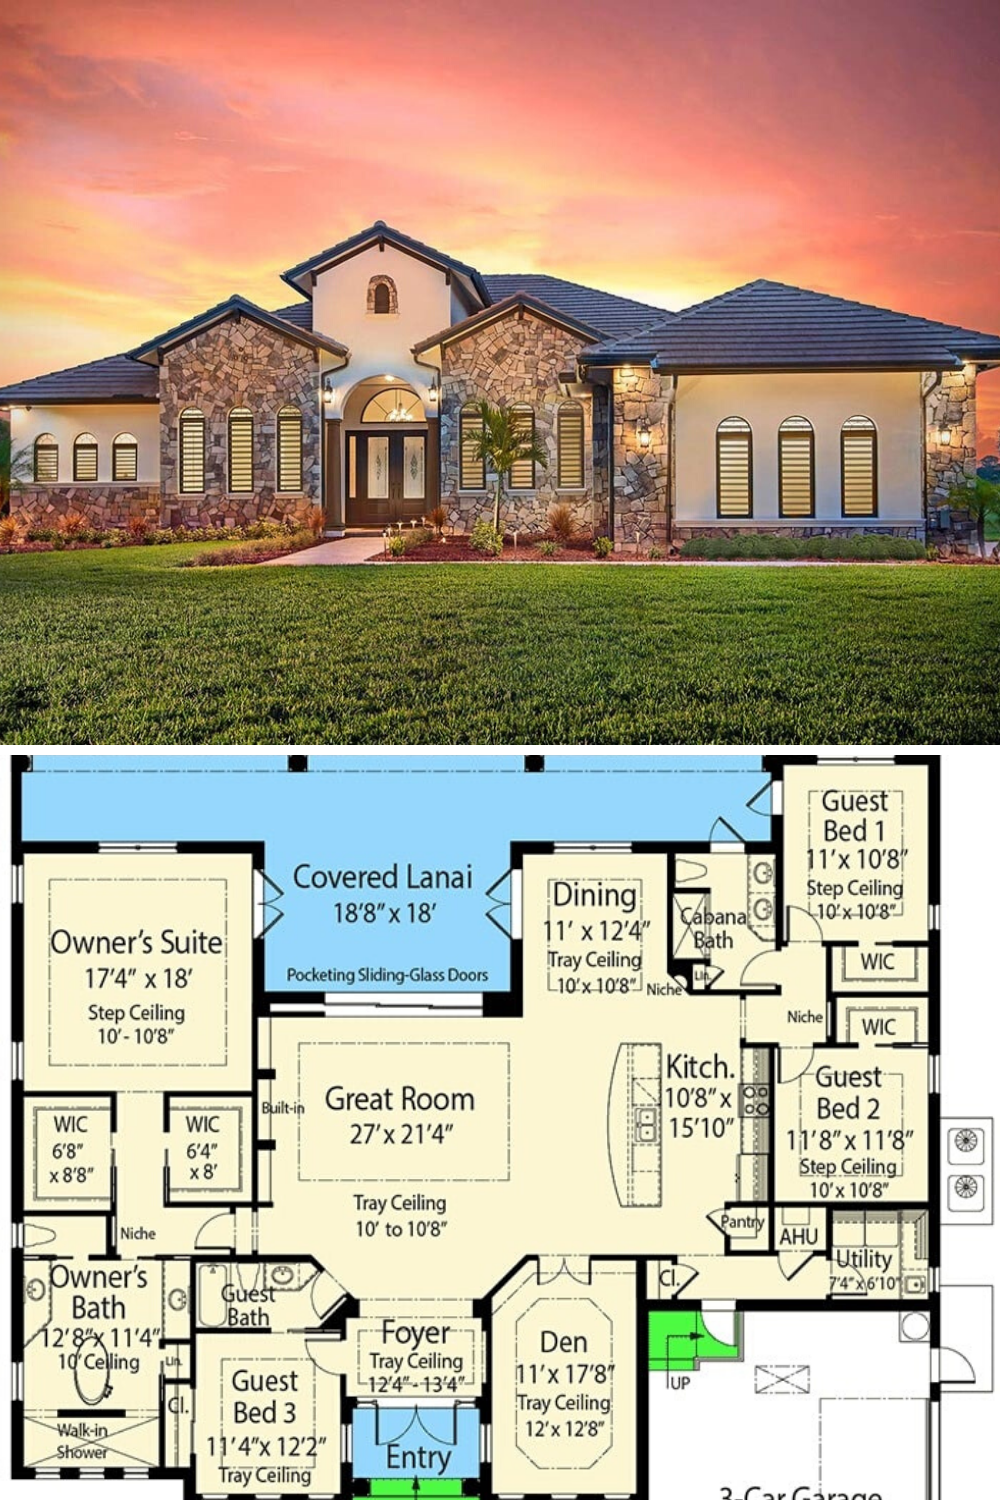 Single Story 4 Bedroom Mediterranean Home With Grand Primary Suite Floor Plan Basement House Plans Mediterranean House Plans Southern House Plans